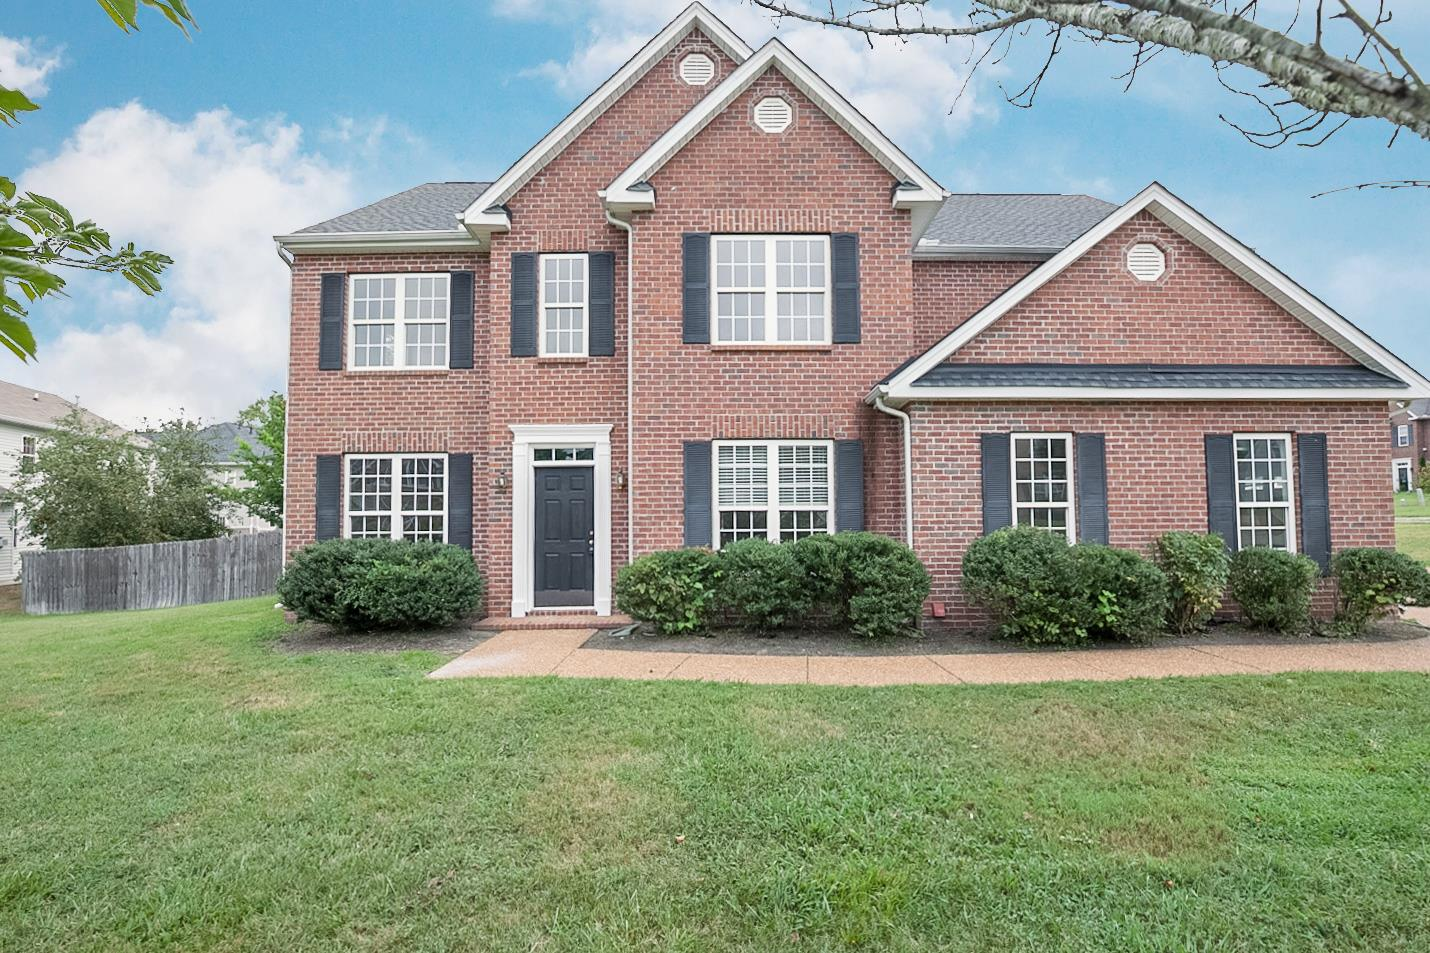 2024 Trenton Dr, Spring Hill in Williamson County, T County, TN 37174 Home for Sale